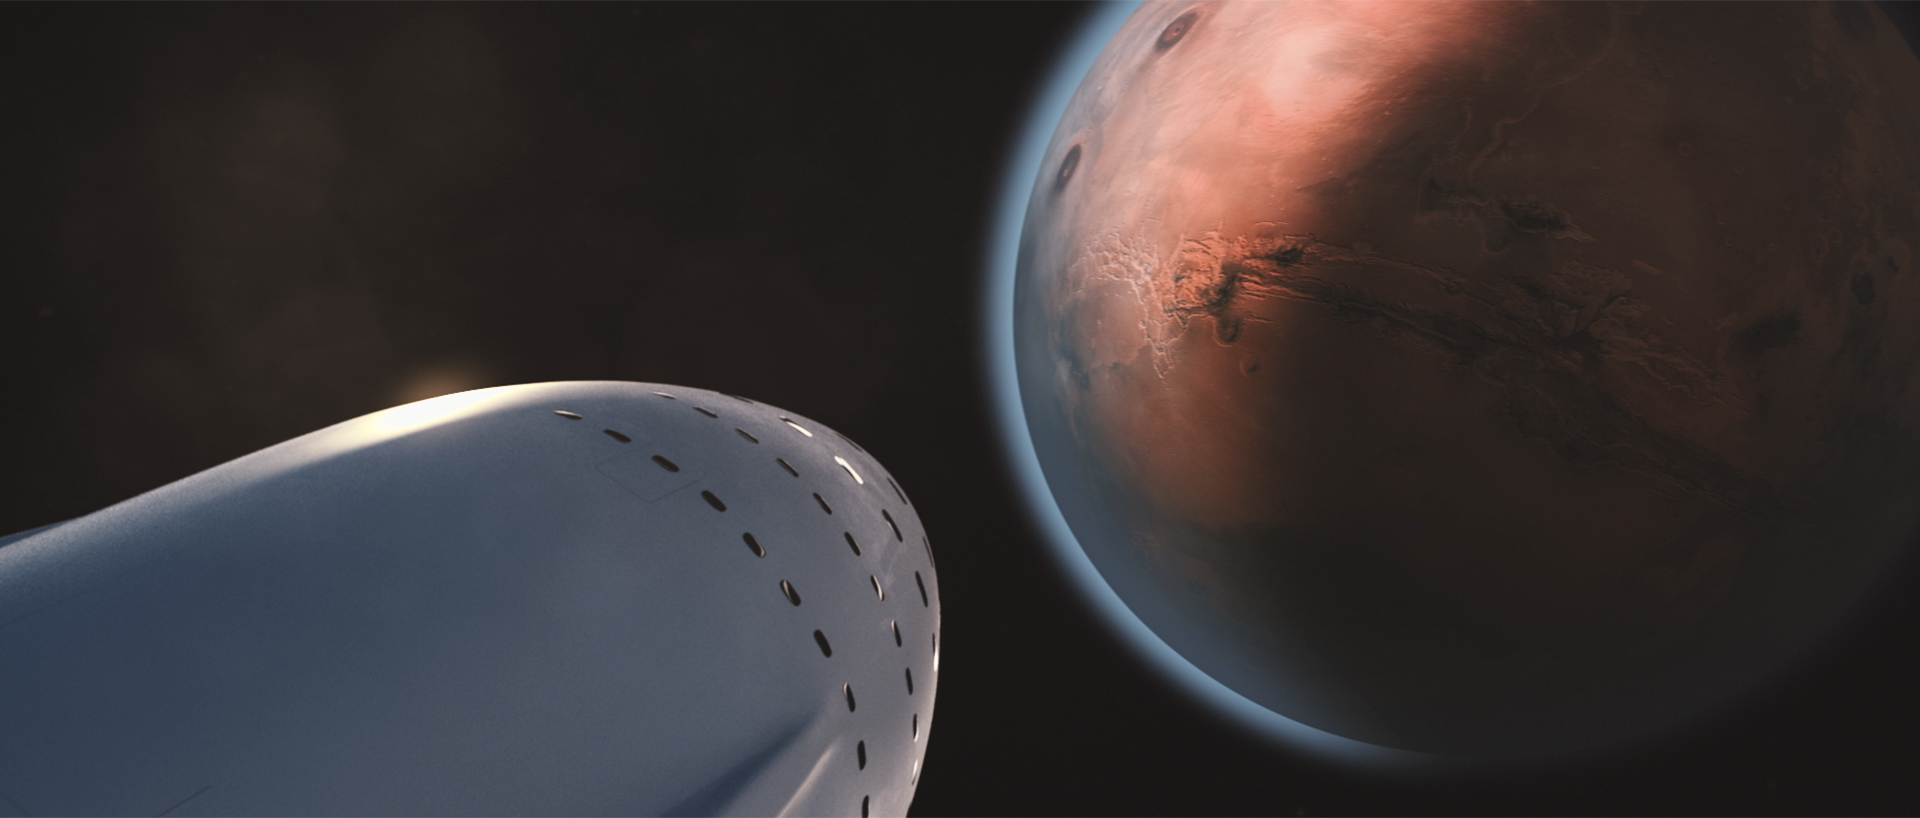 SpaceX's Interplanetary System for Mars Colonization in Images